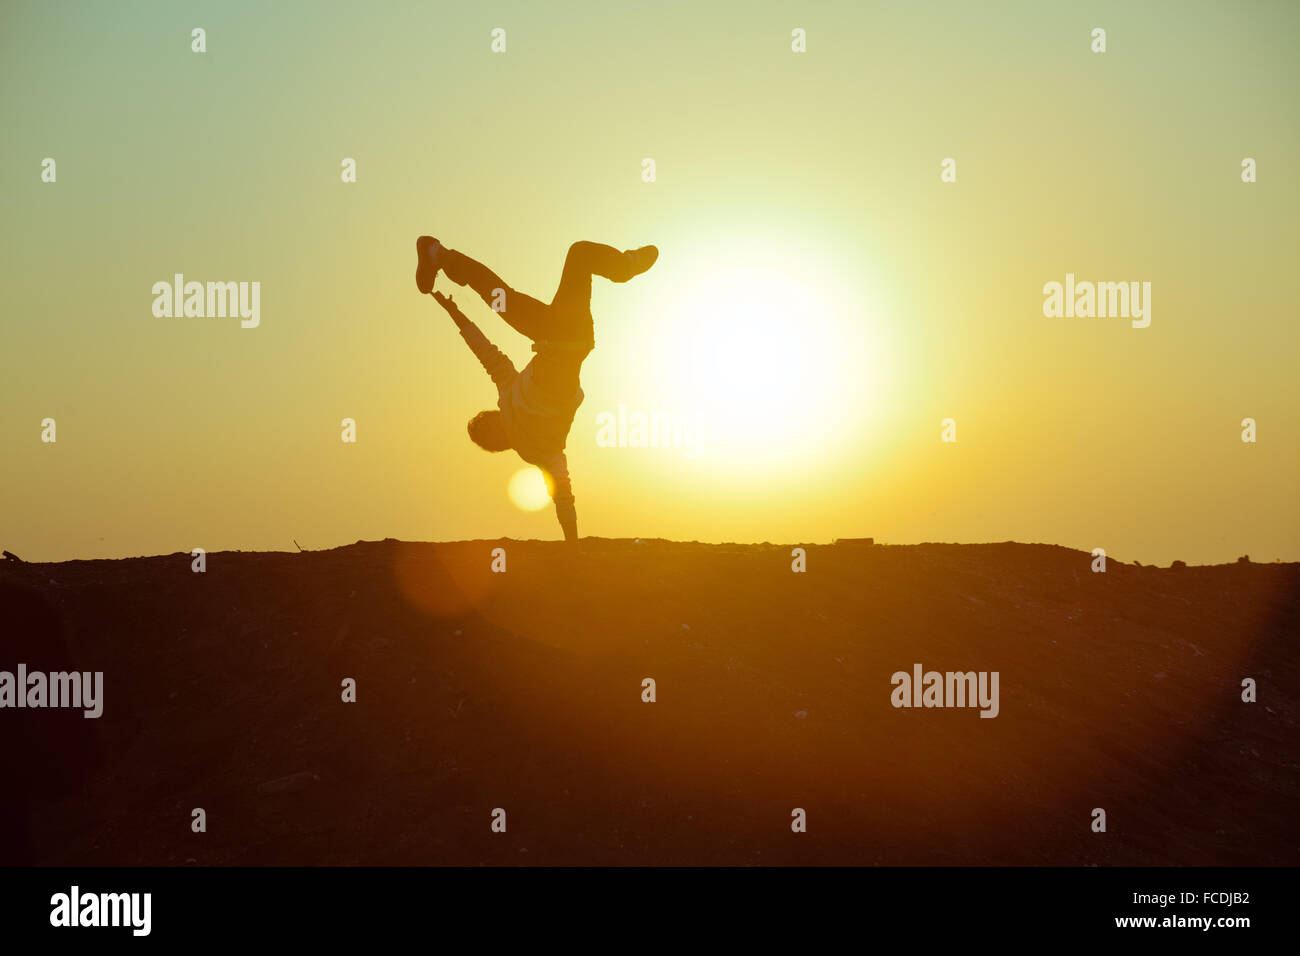 Silhouette Person Doing Handstand Against Sky During Sunset - Stock Photo